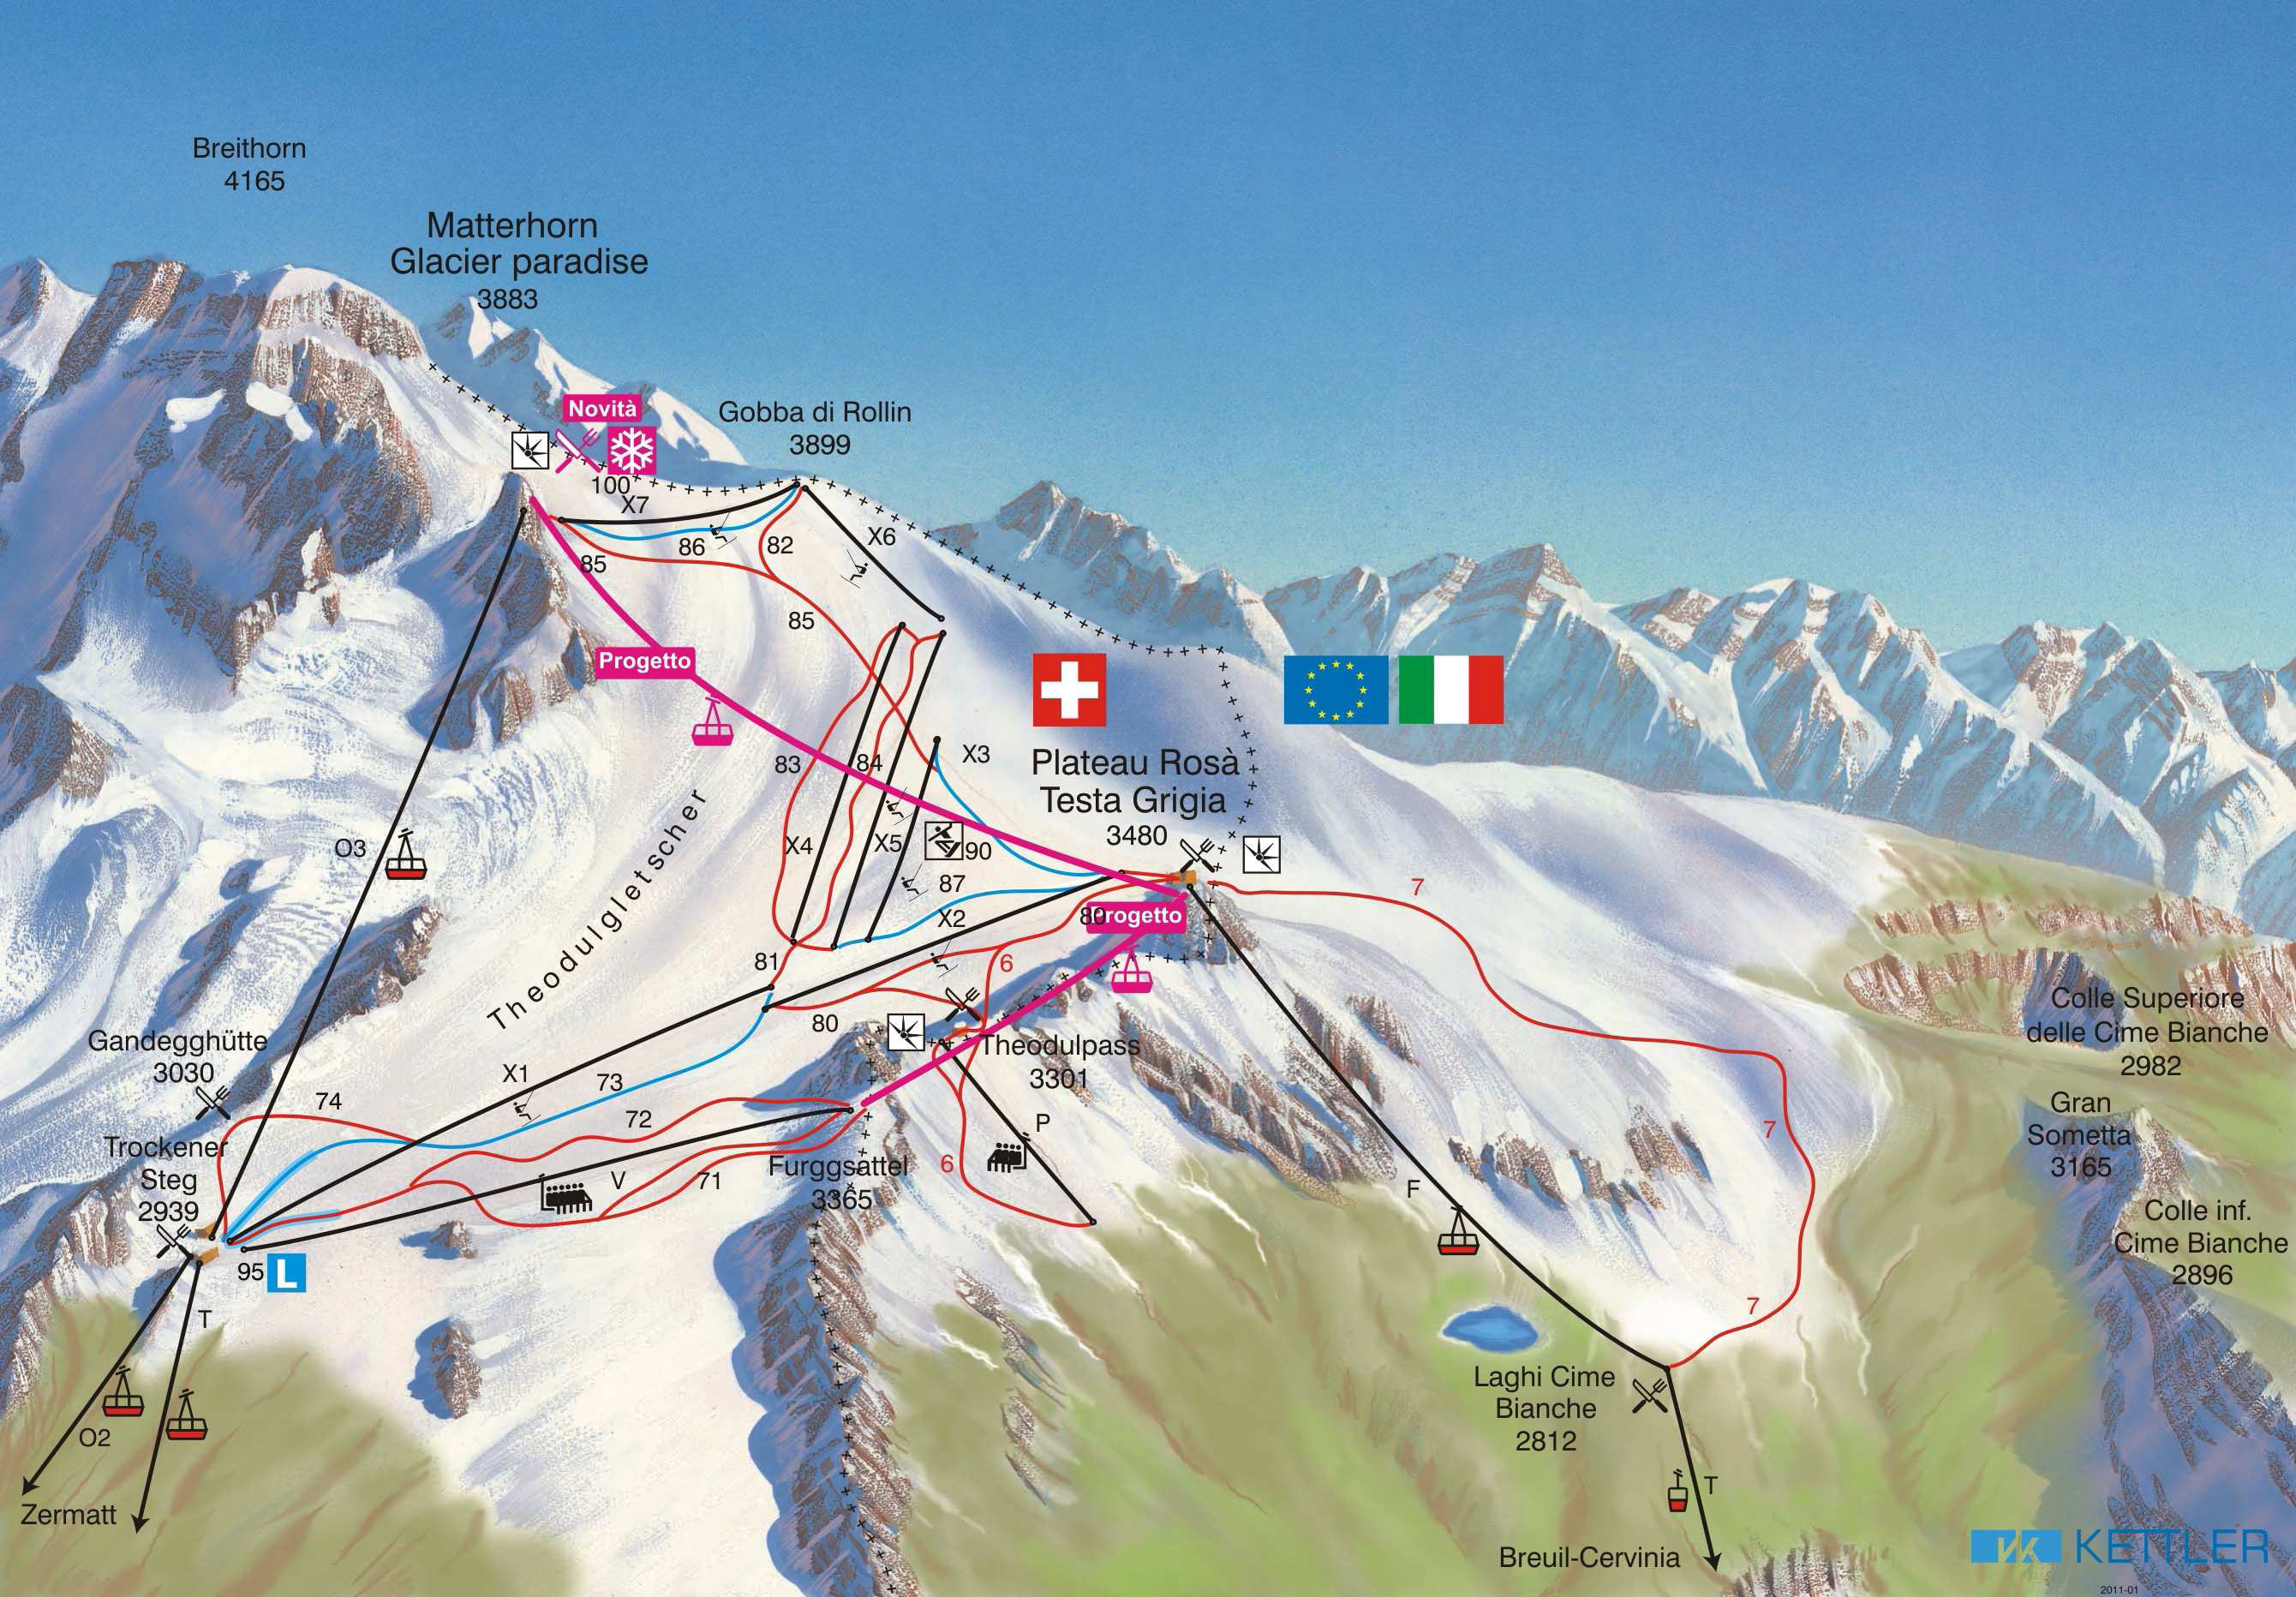 Zermatt Summer Skiing Piste Map Free downloadable piste maps